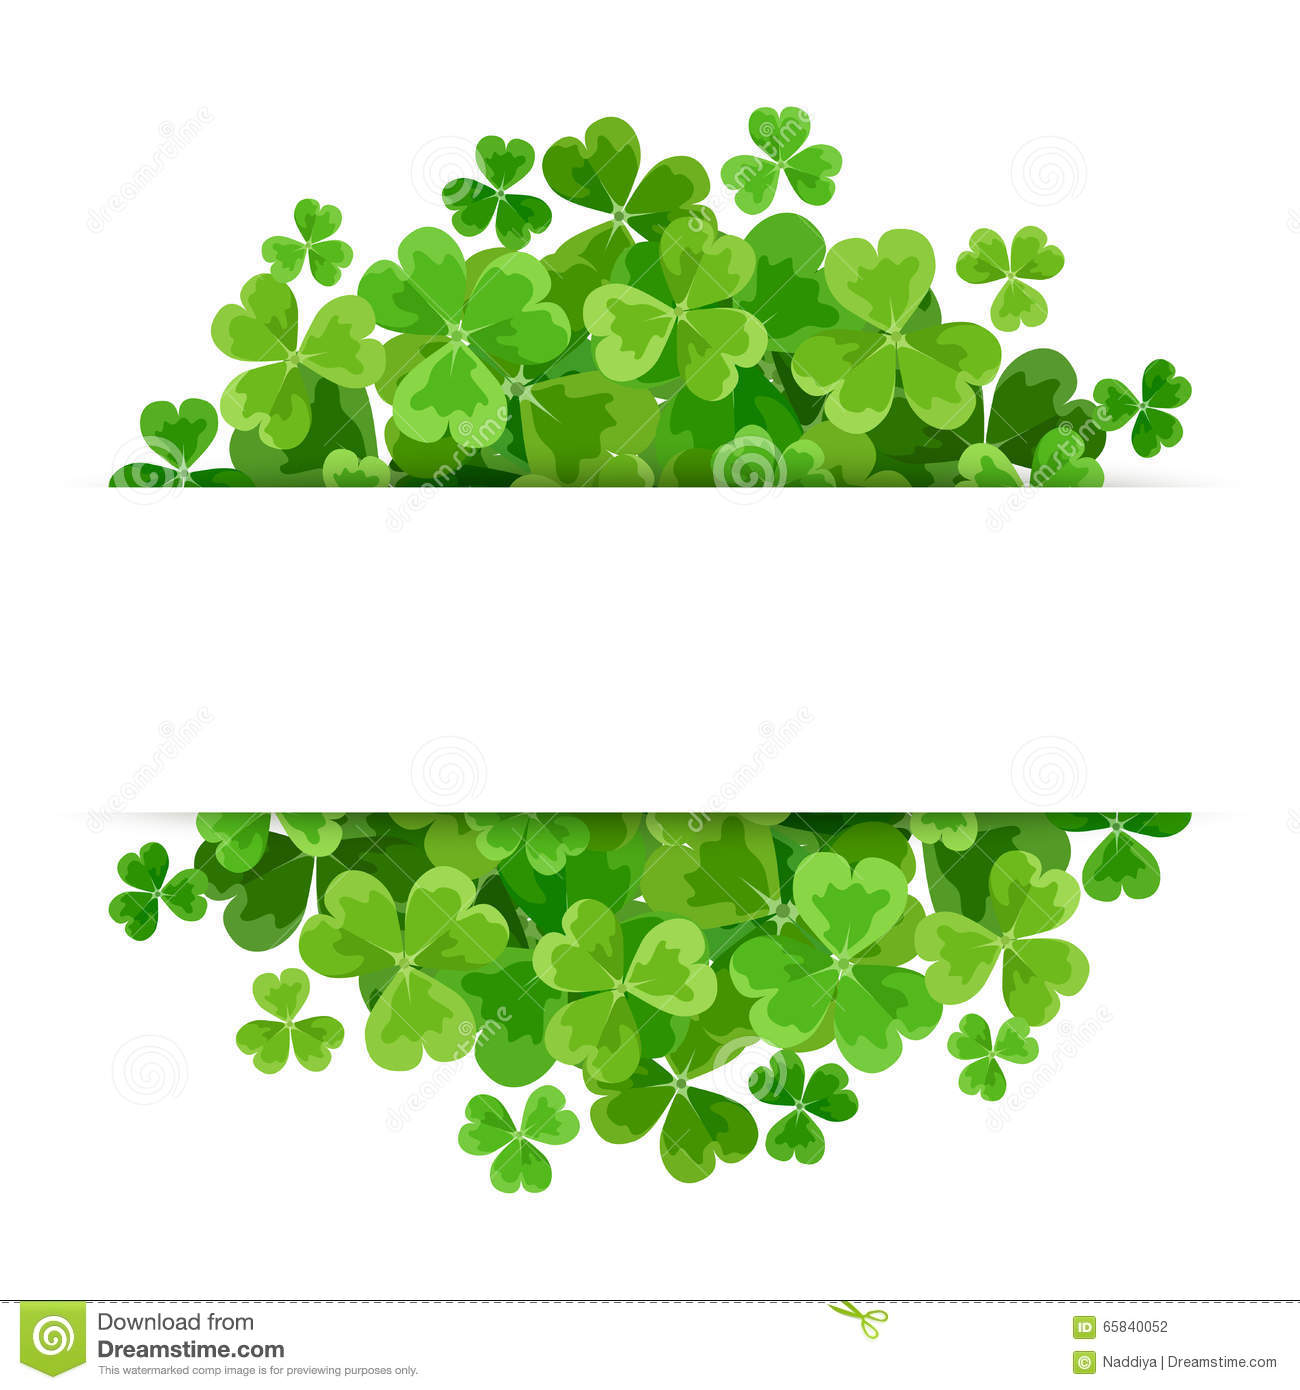 patricks day shamrock background - photo #39